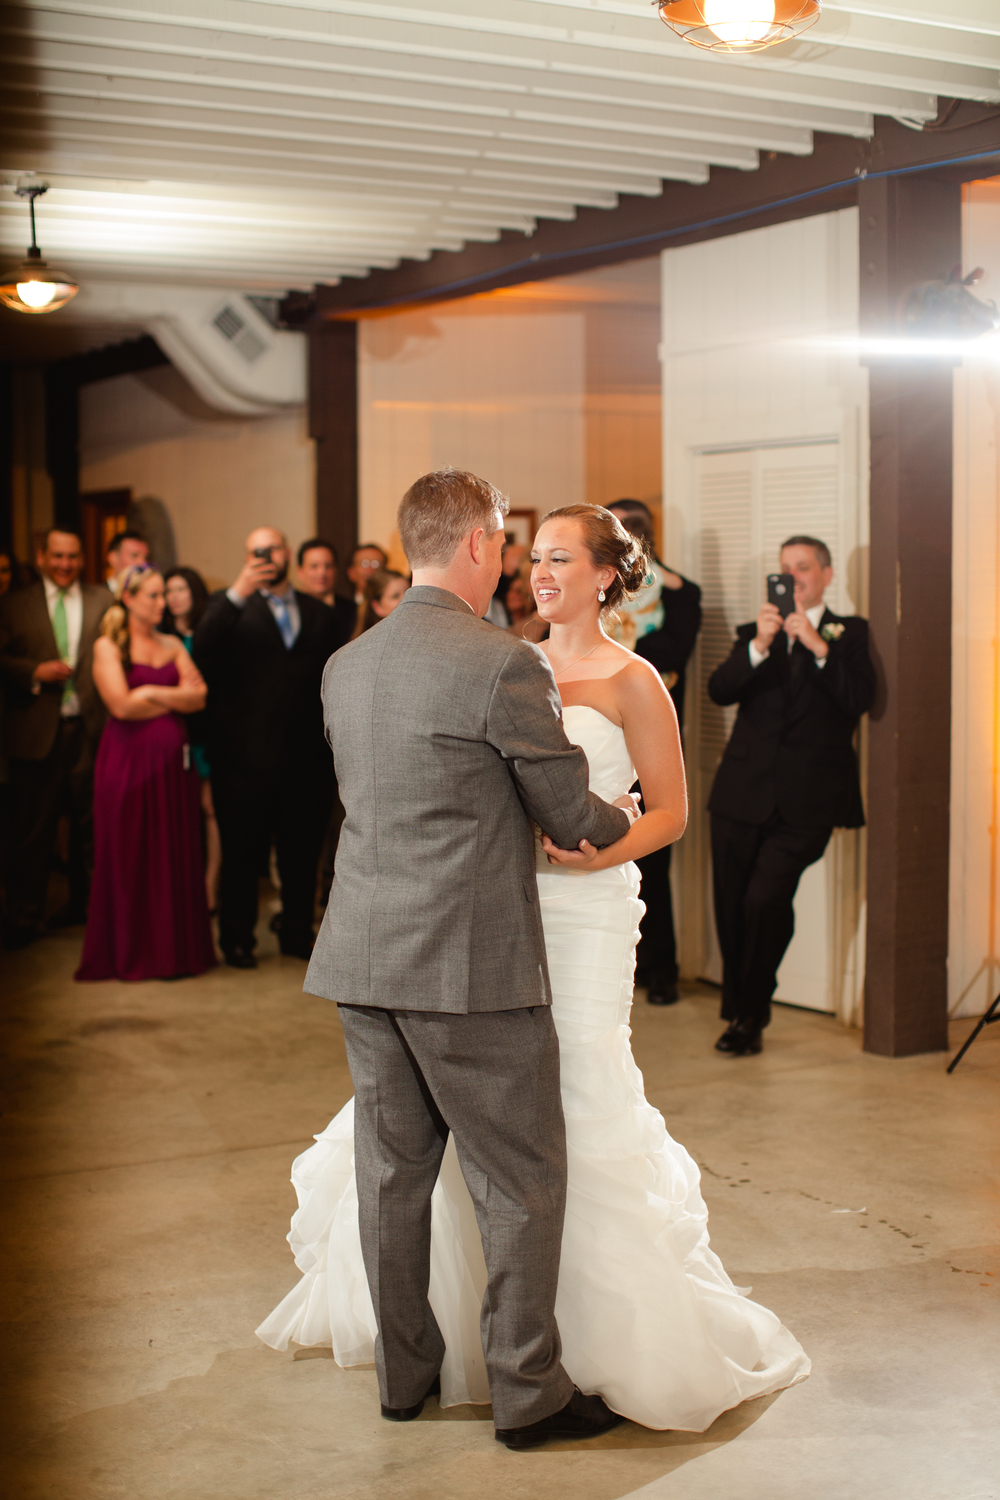 Vnes_Photography-S&J_Wedding-911.jpg